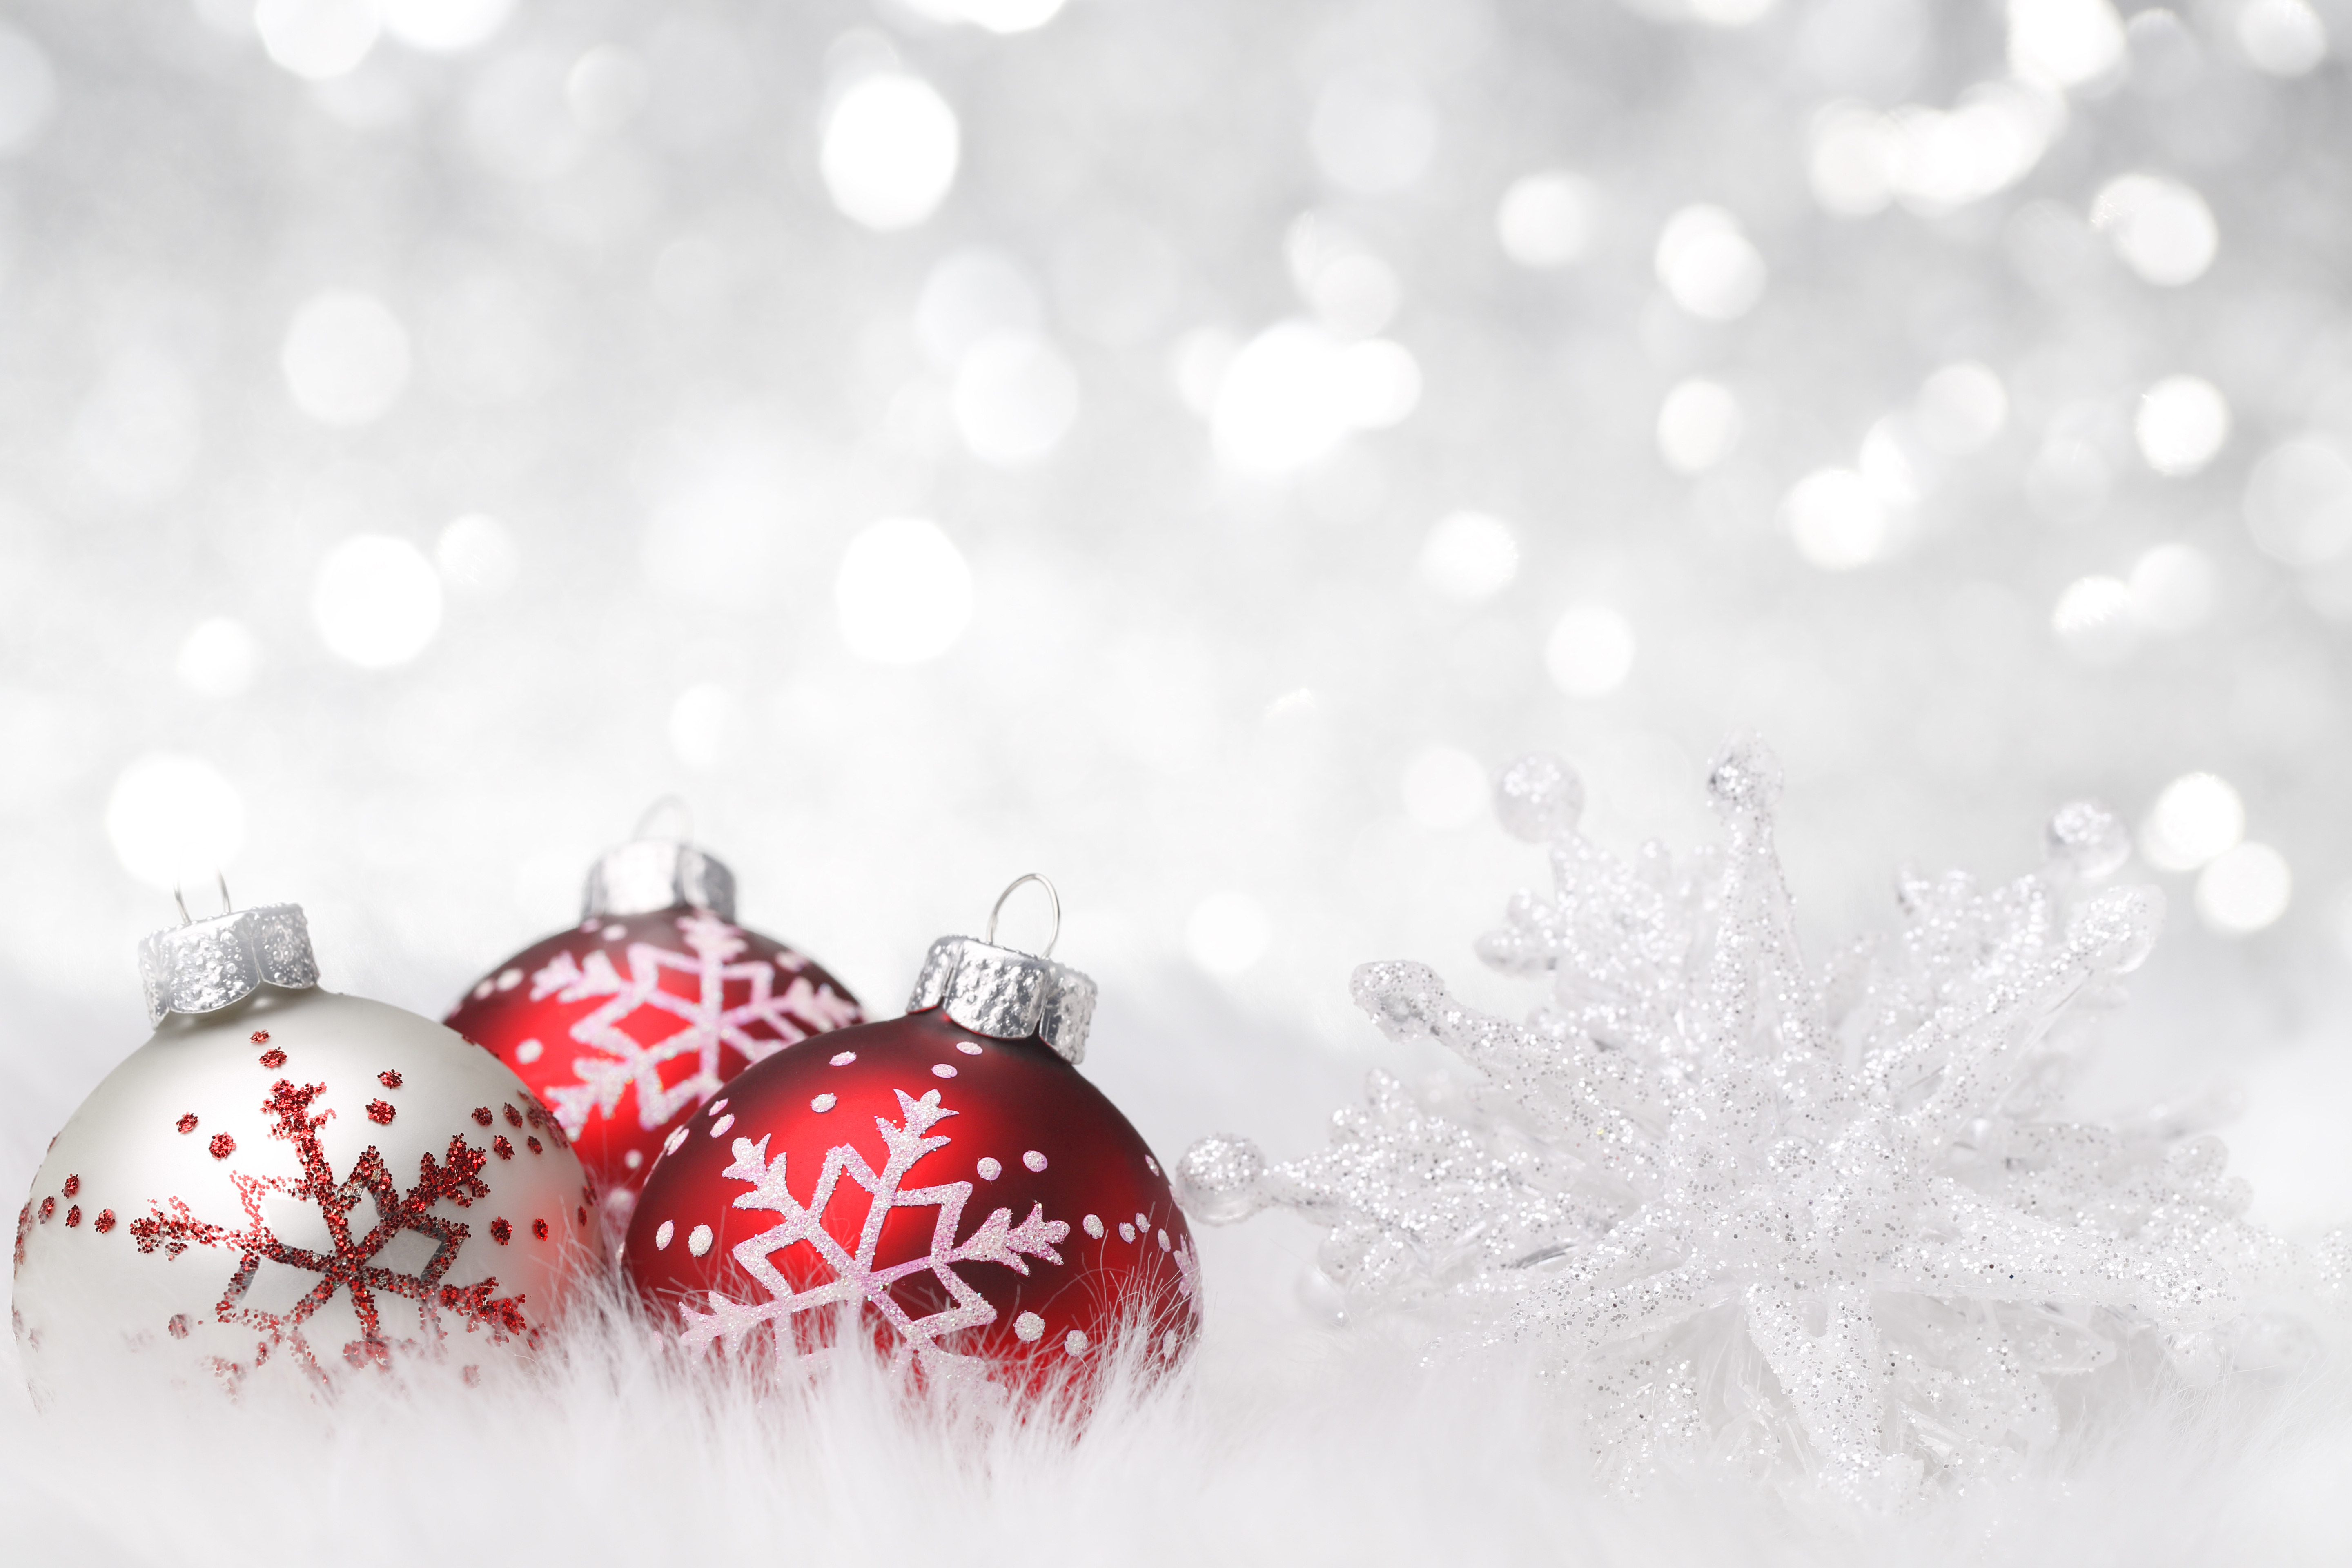 Christmas Background with Snowflake and Christmas Balls Gallery 5760x3840